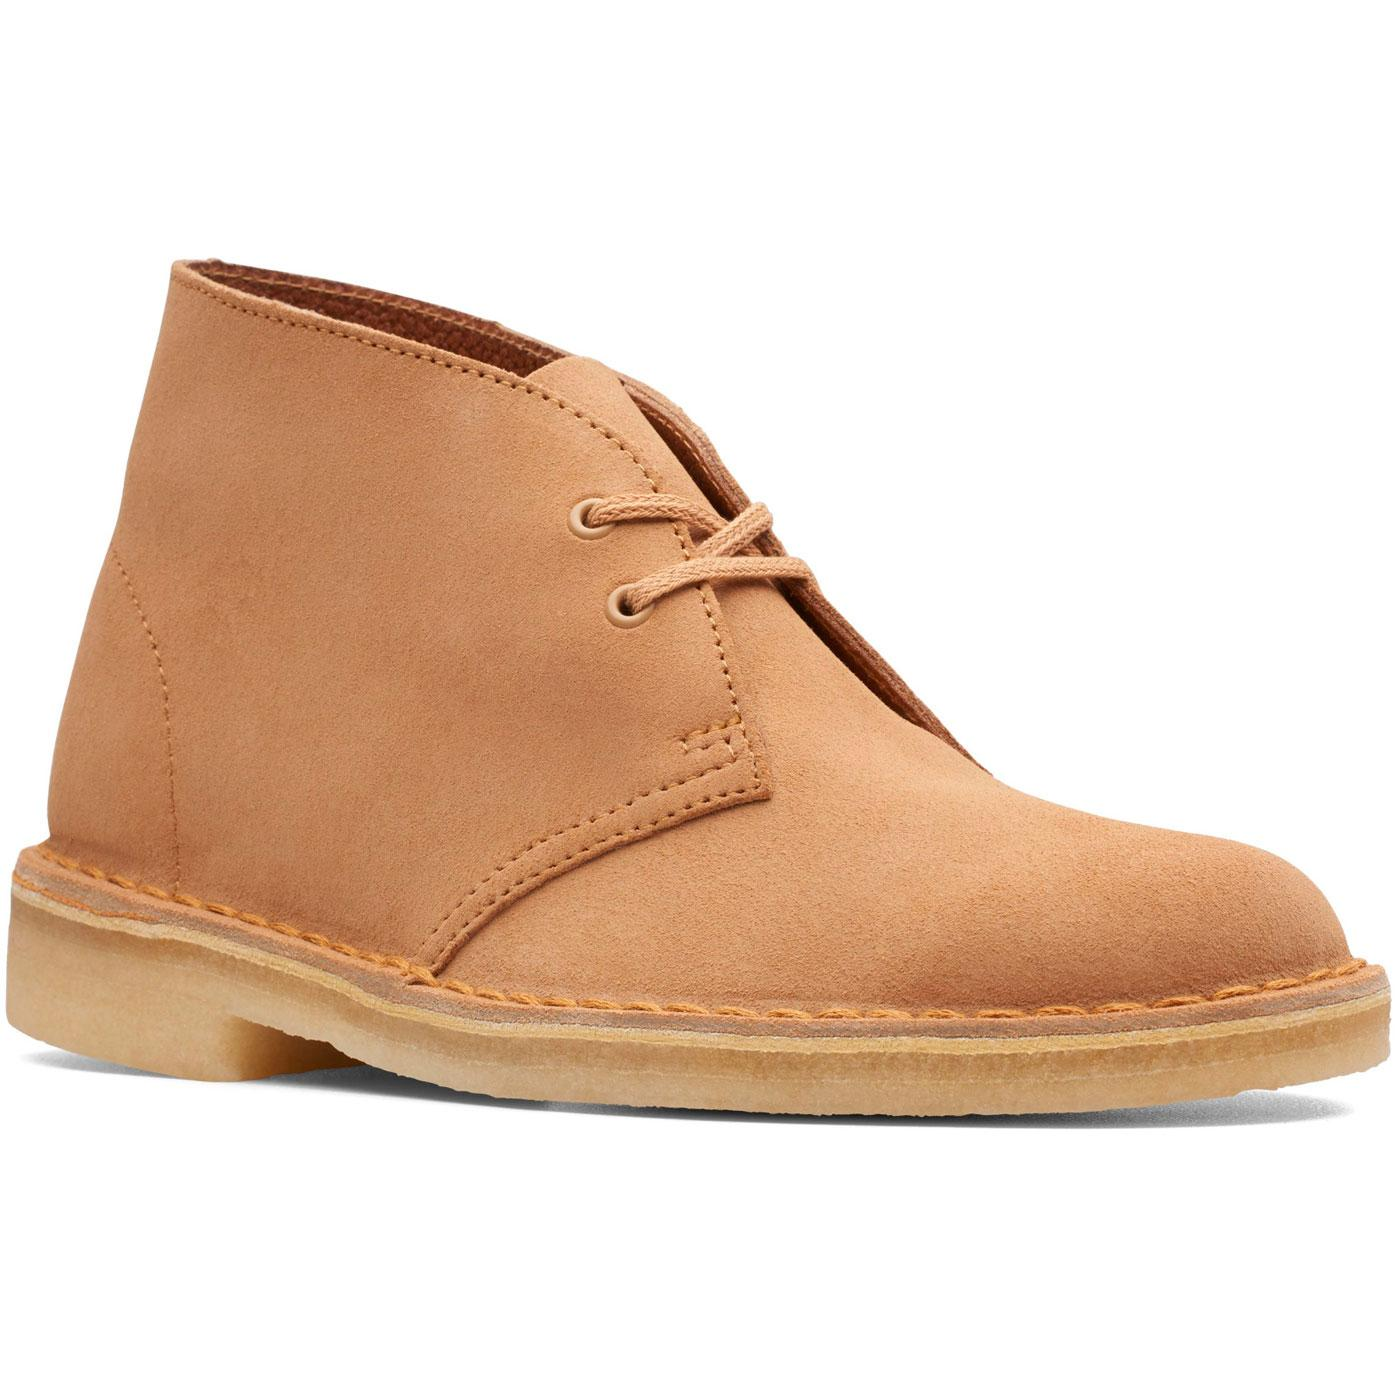 CLARKS ORIGINALS Women's Desert Boots in Light Tan